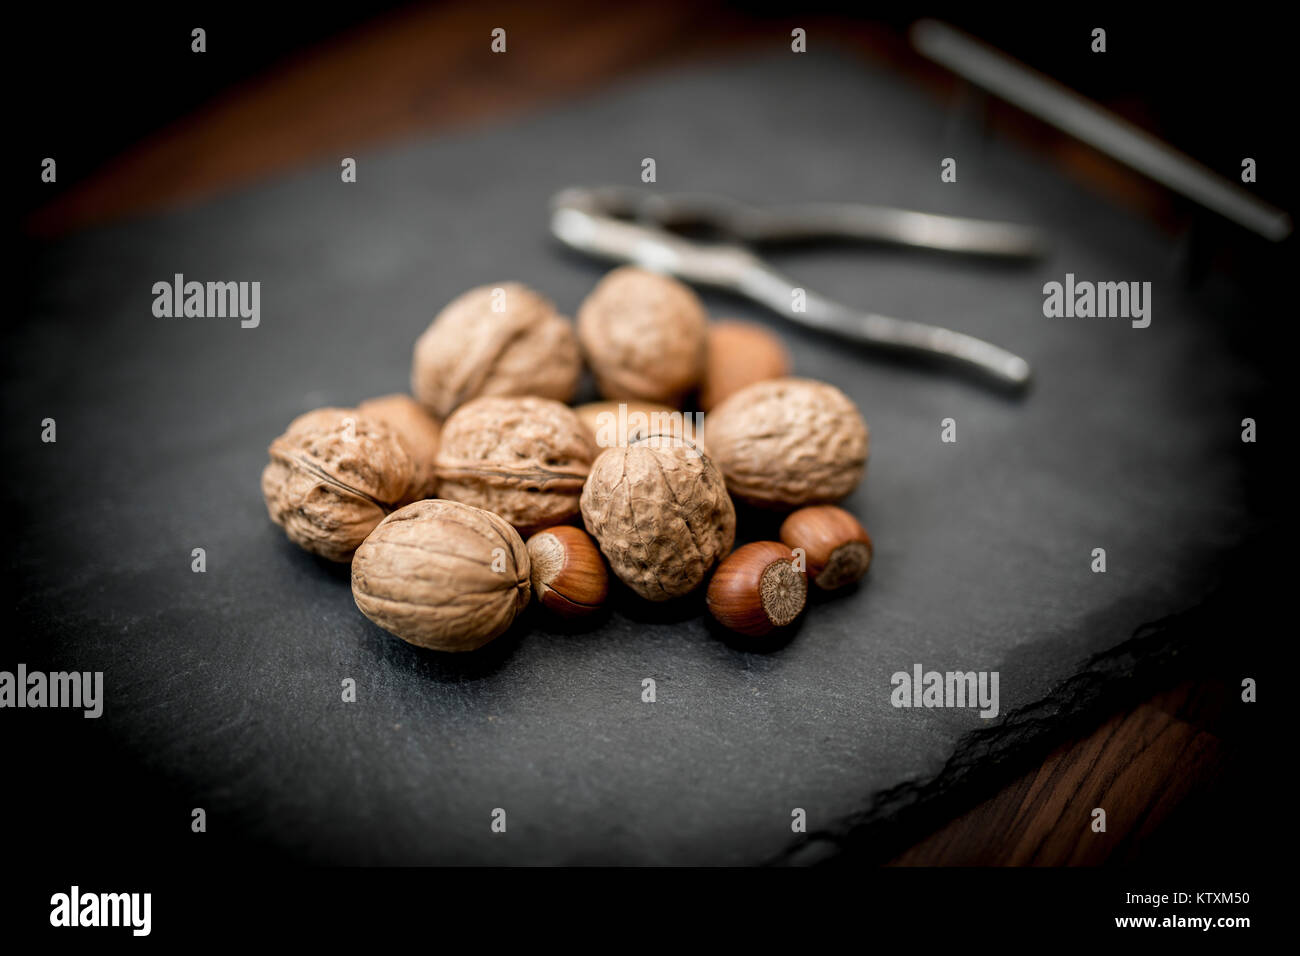 Mixed whole nuts in their shells including walnuts, hazelnuts, almonds and pecans with a nut cracker - Stock Image